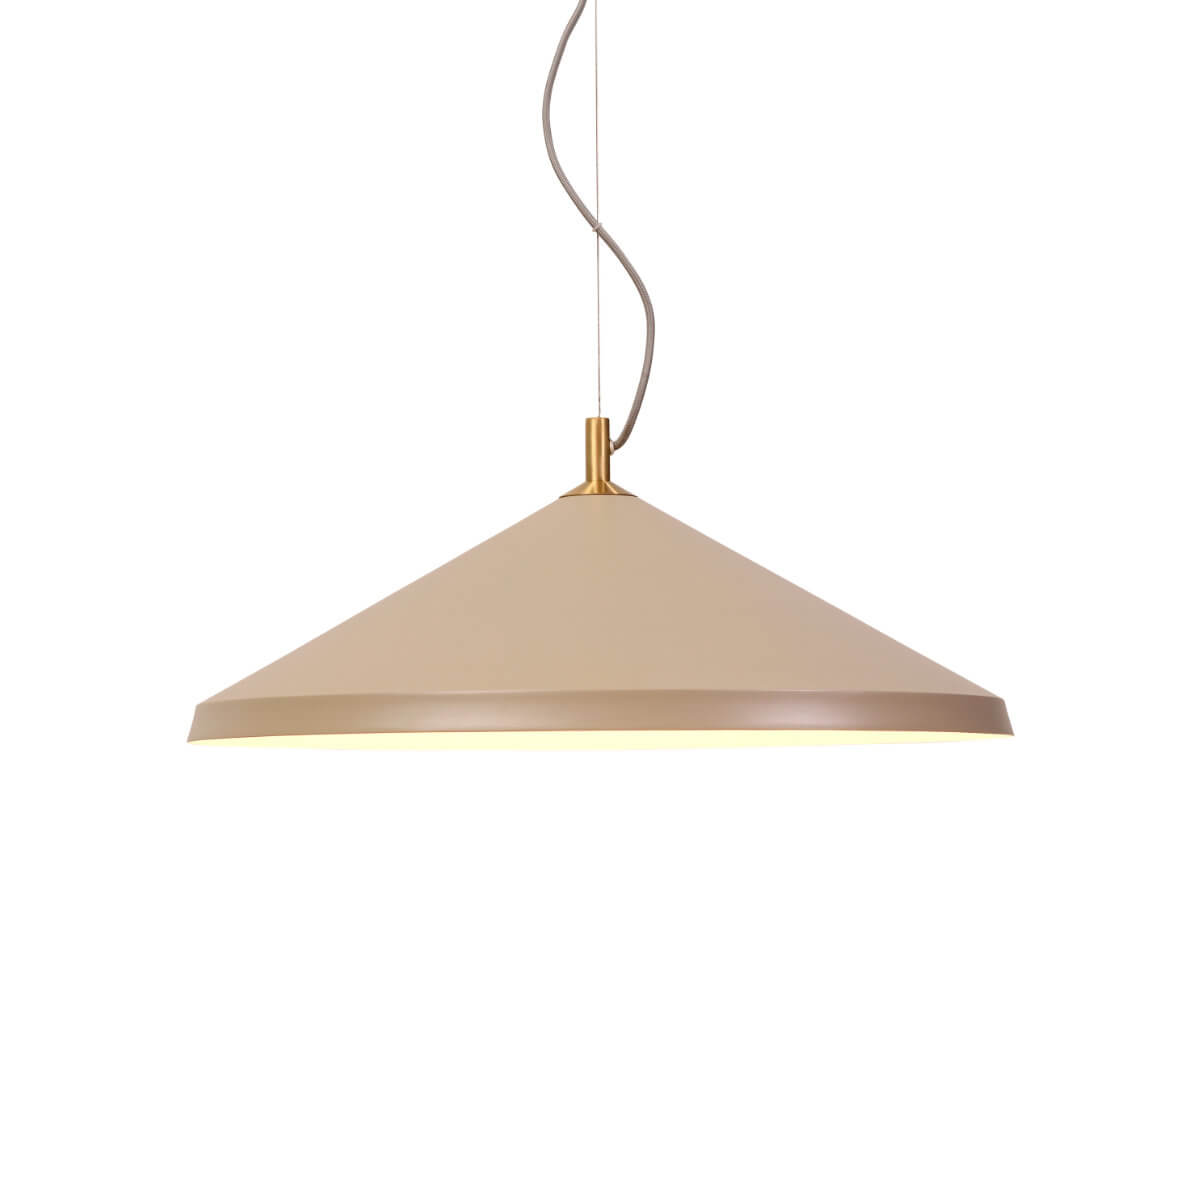 Suspension Montreux beige - It's About Romi